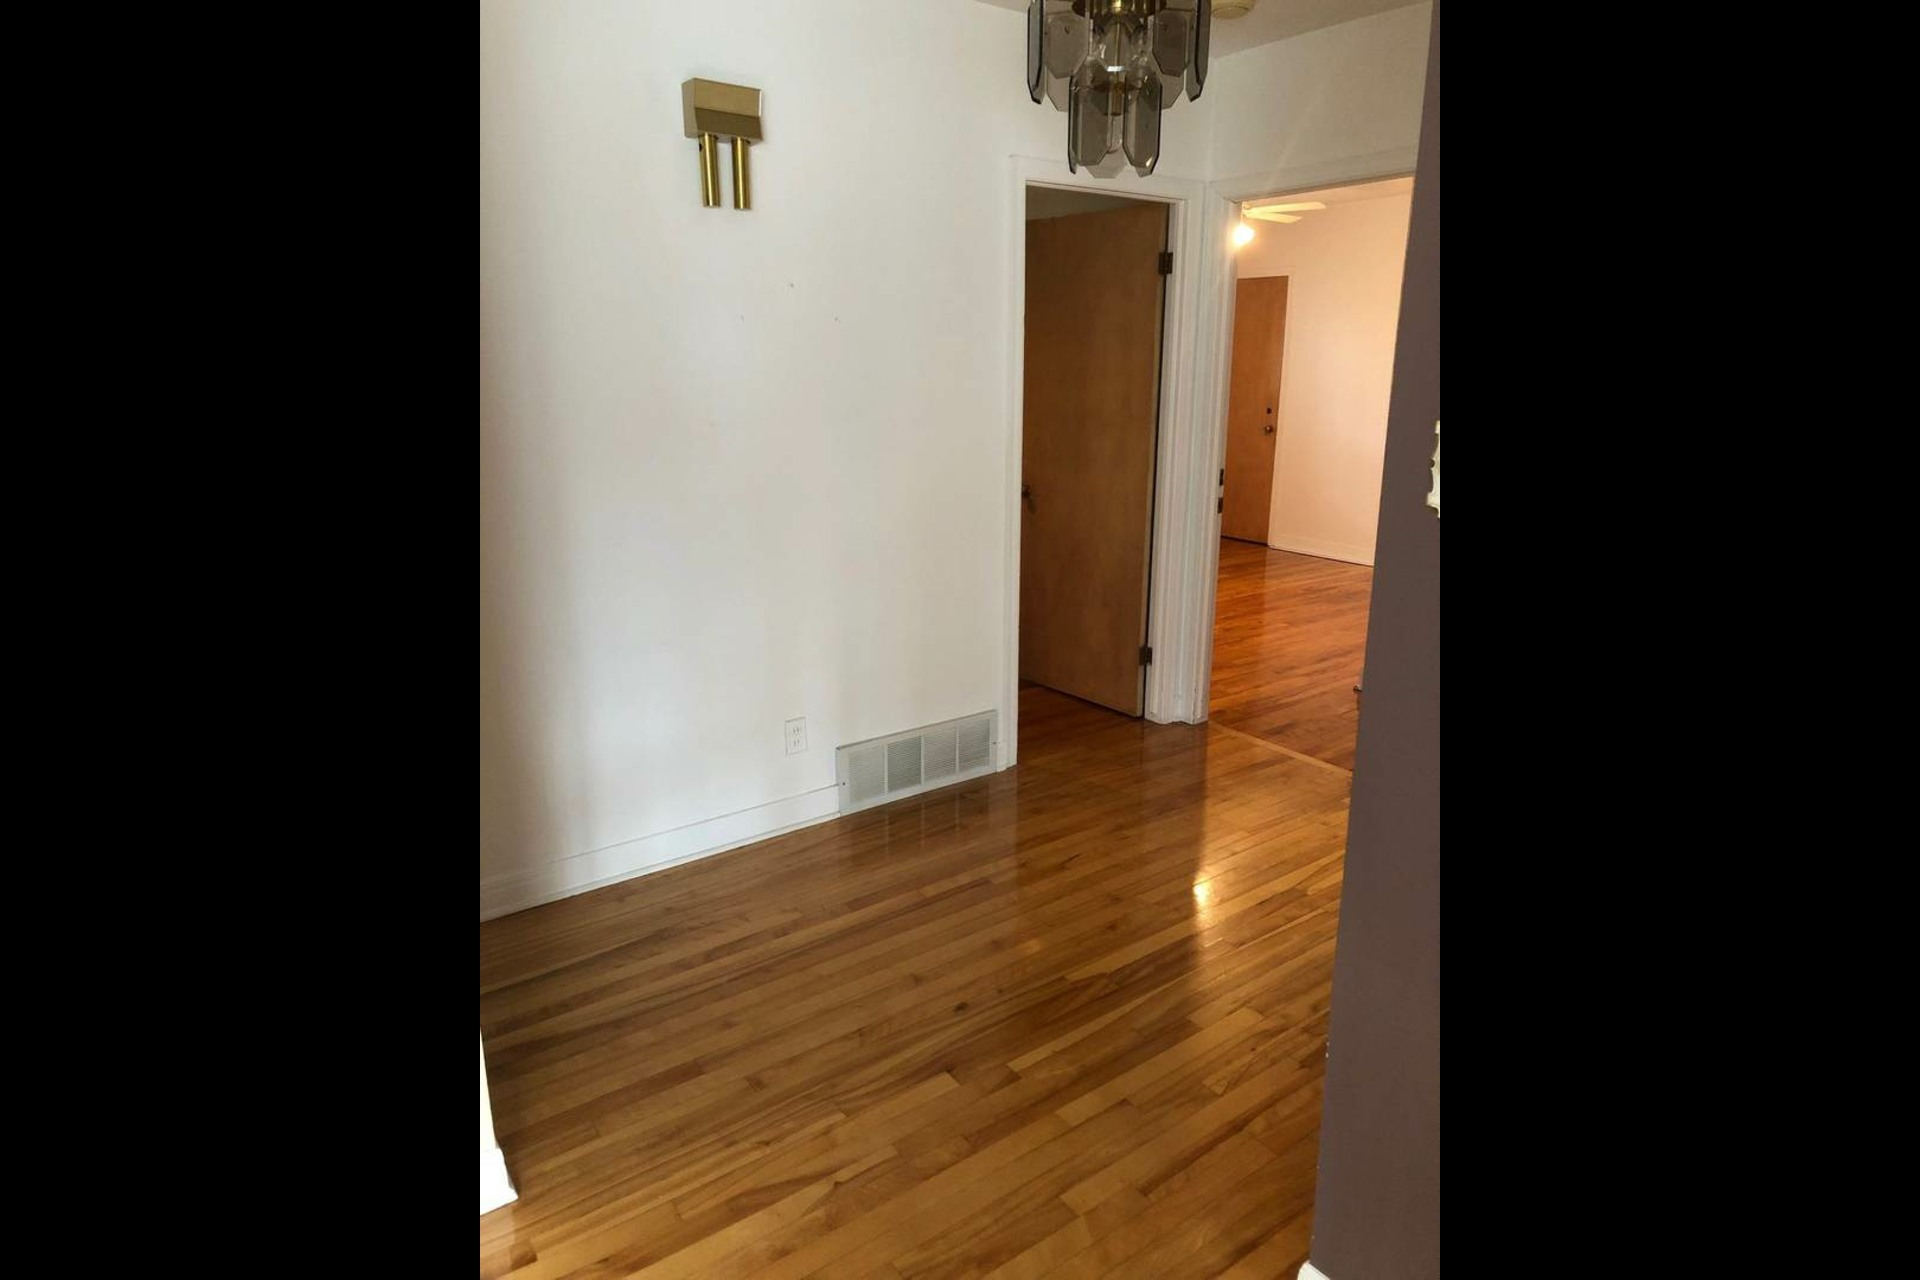 image 6 - House For rent Repentigny - 5 rooms